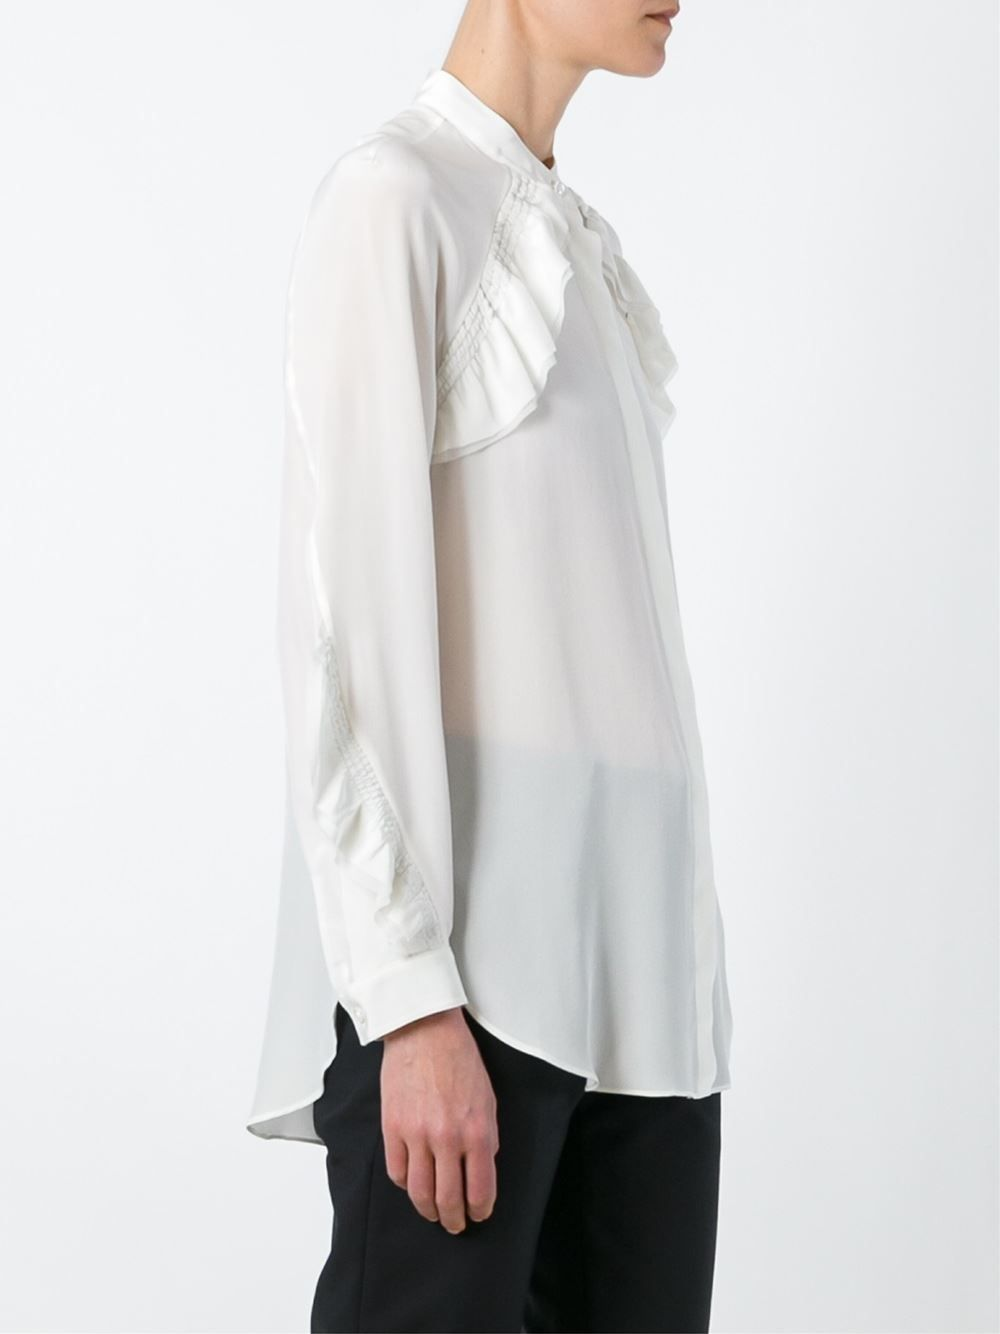 cee6a96a148 3.1 Phillip Lim ruffled oversize blouse Энн Демелемейстер